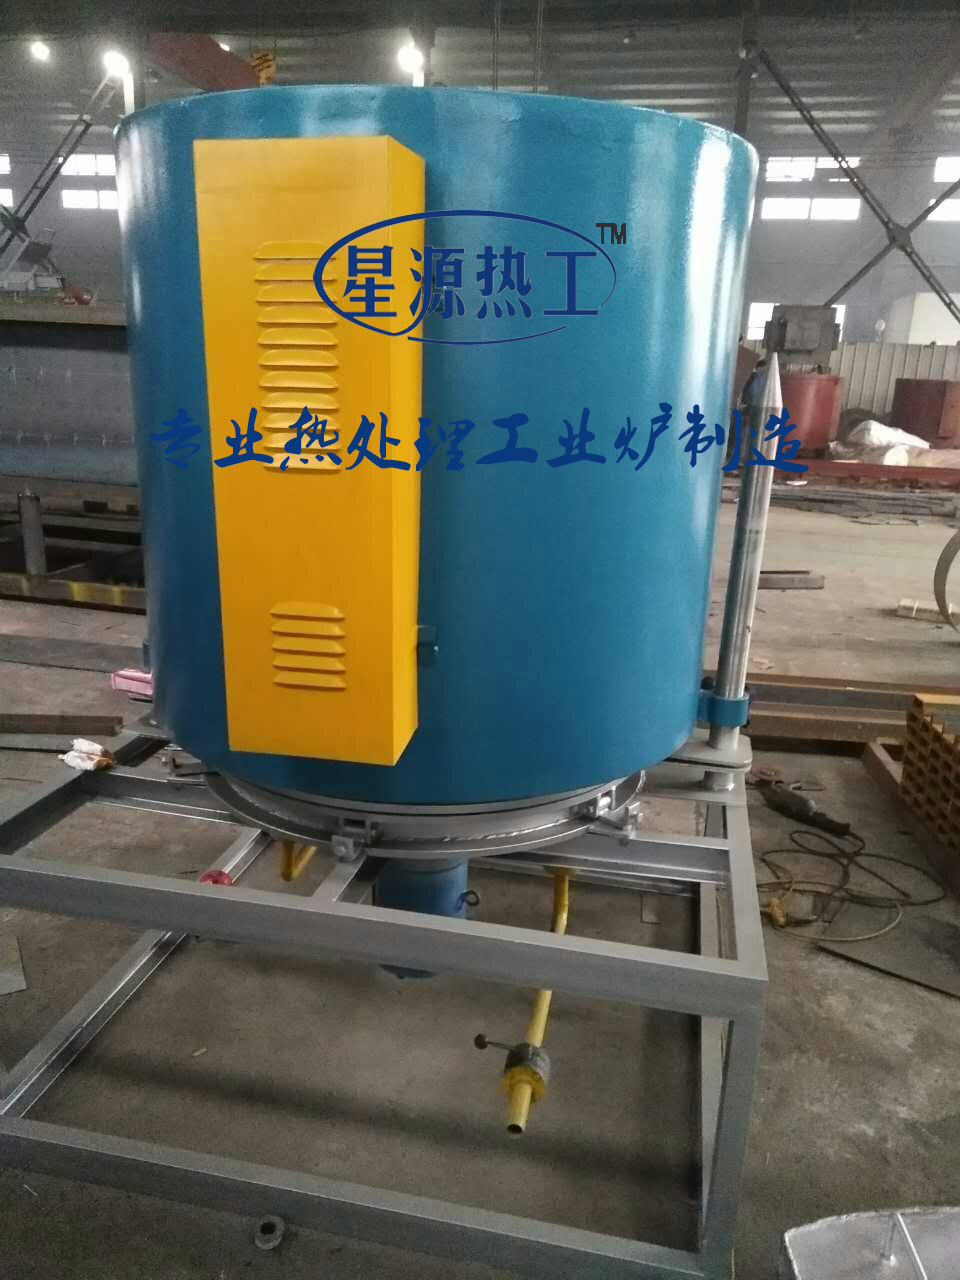 27kw Vacuum cover furnace for electronic products